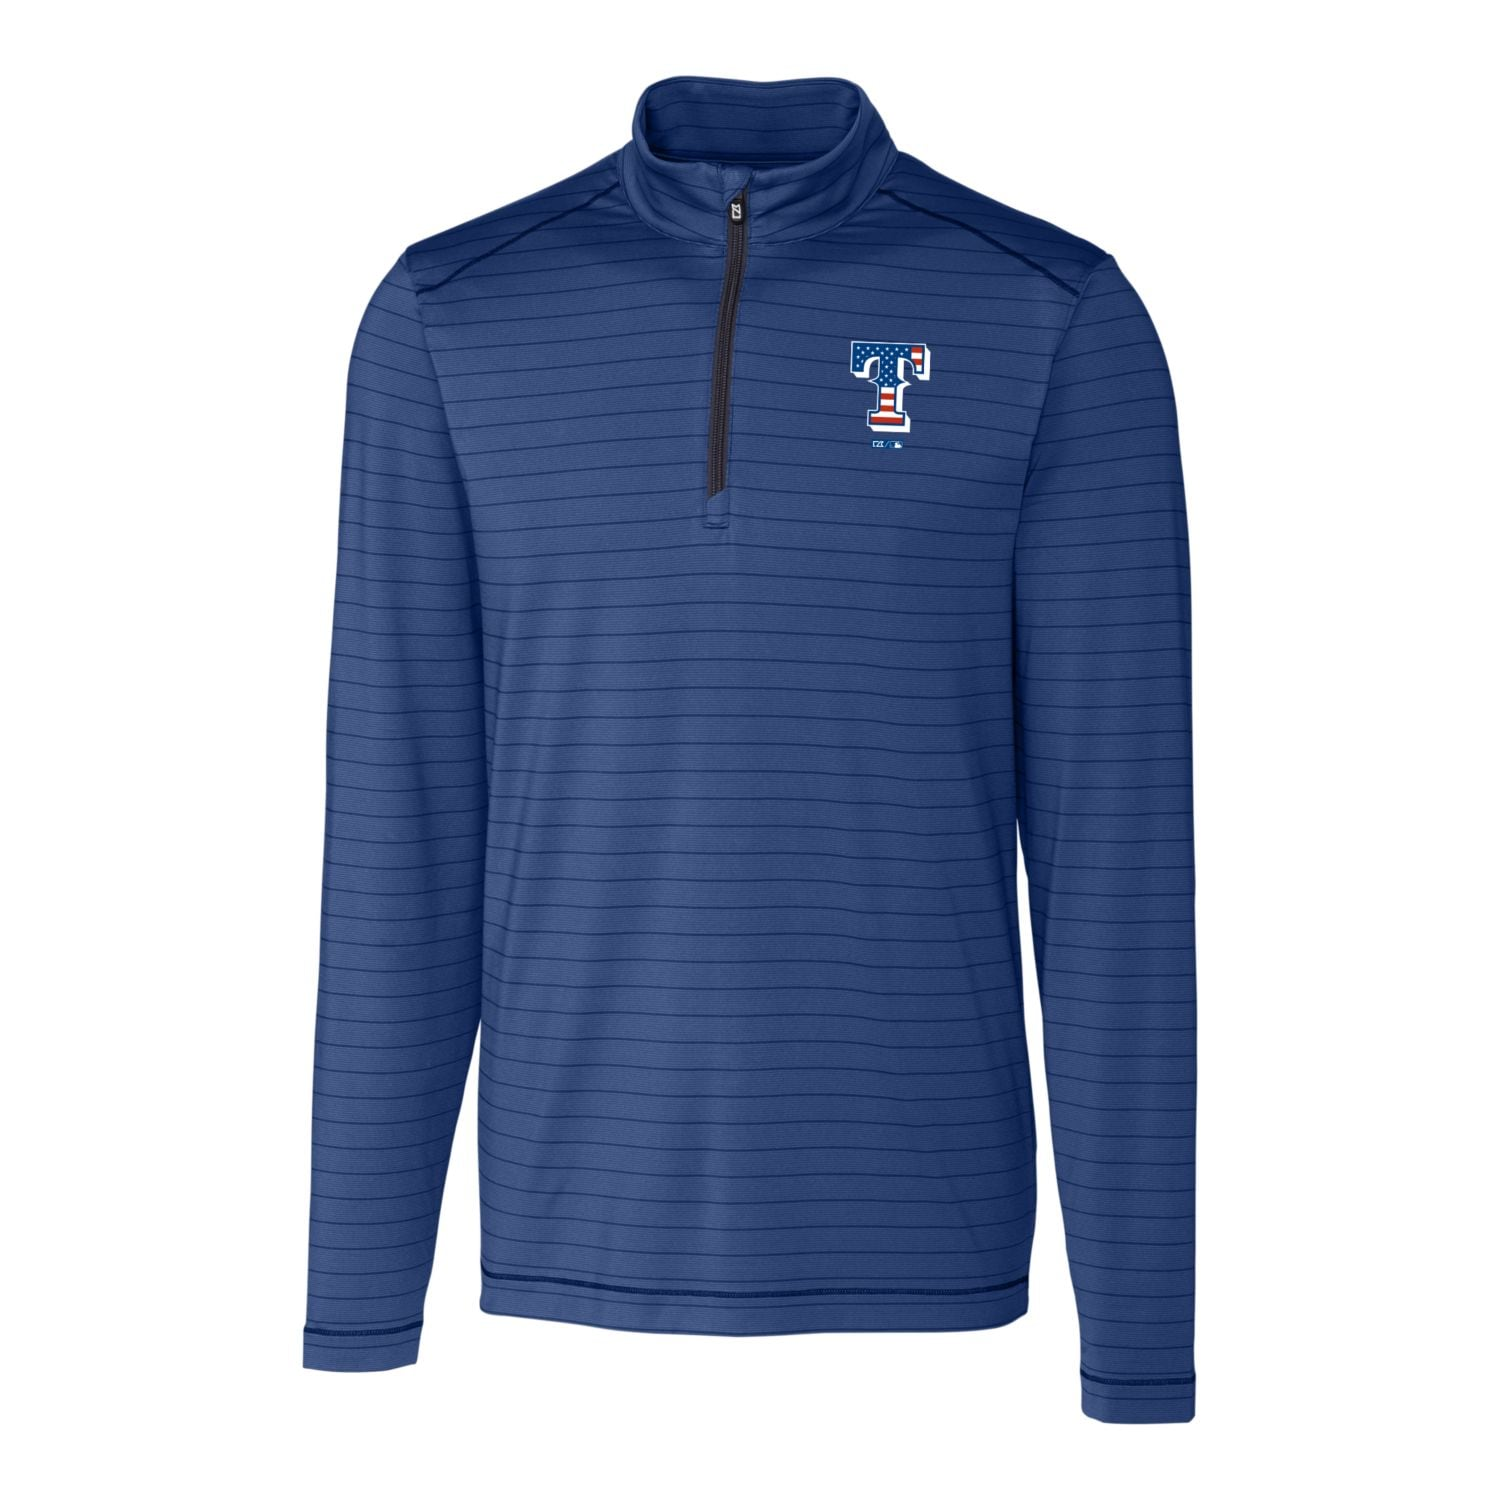 Texas Rangers Cutter & Buck Stars & Stripes Big & Tall Holman Stripe Quarter-Zip Pullover Jacket - Navy